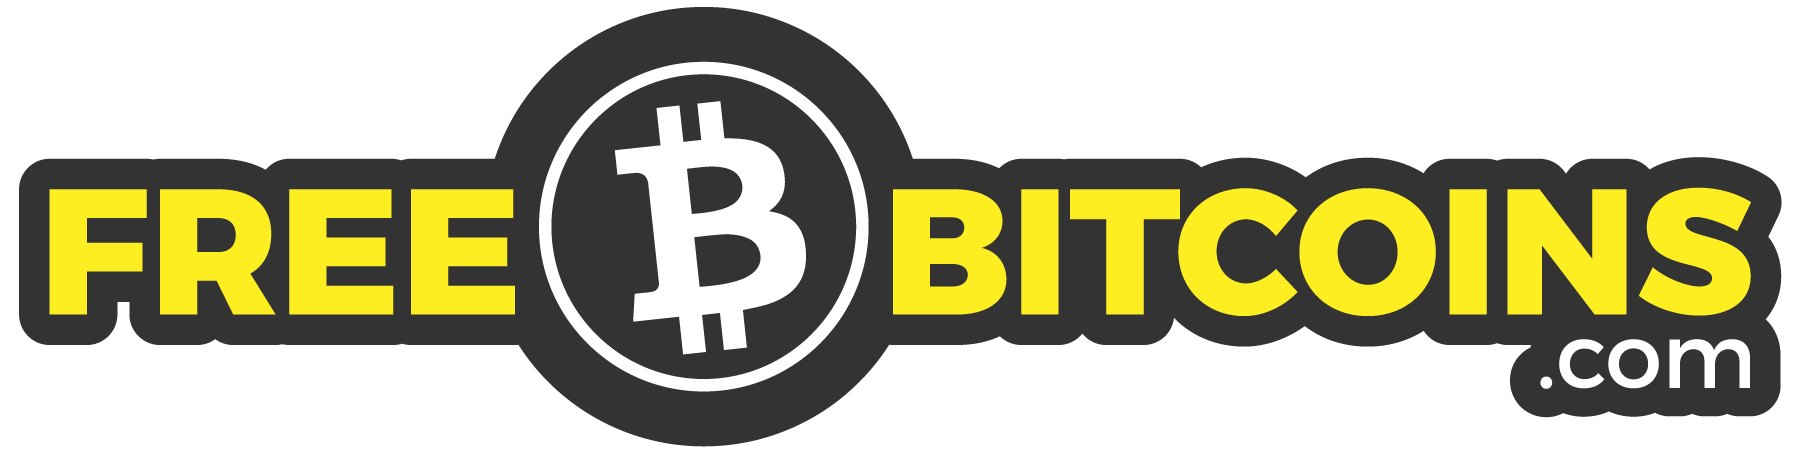 FreeBitcoins.com Logo